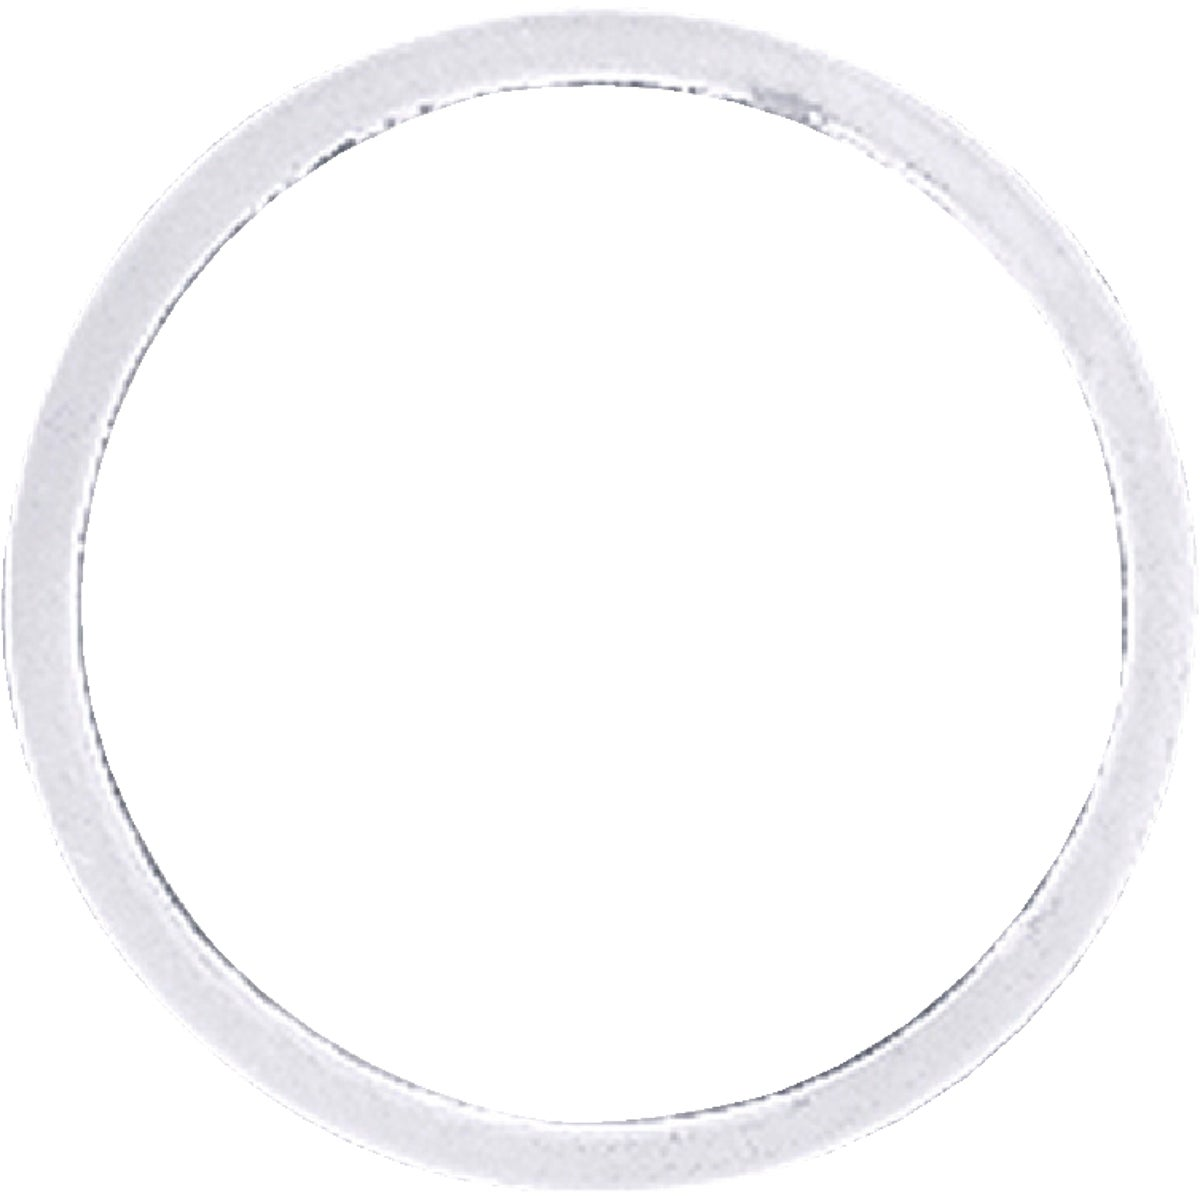 #39 CAP THREAD GASKET - 35574B by Danco Perfect Match